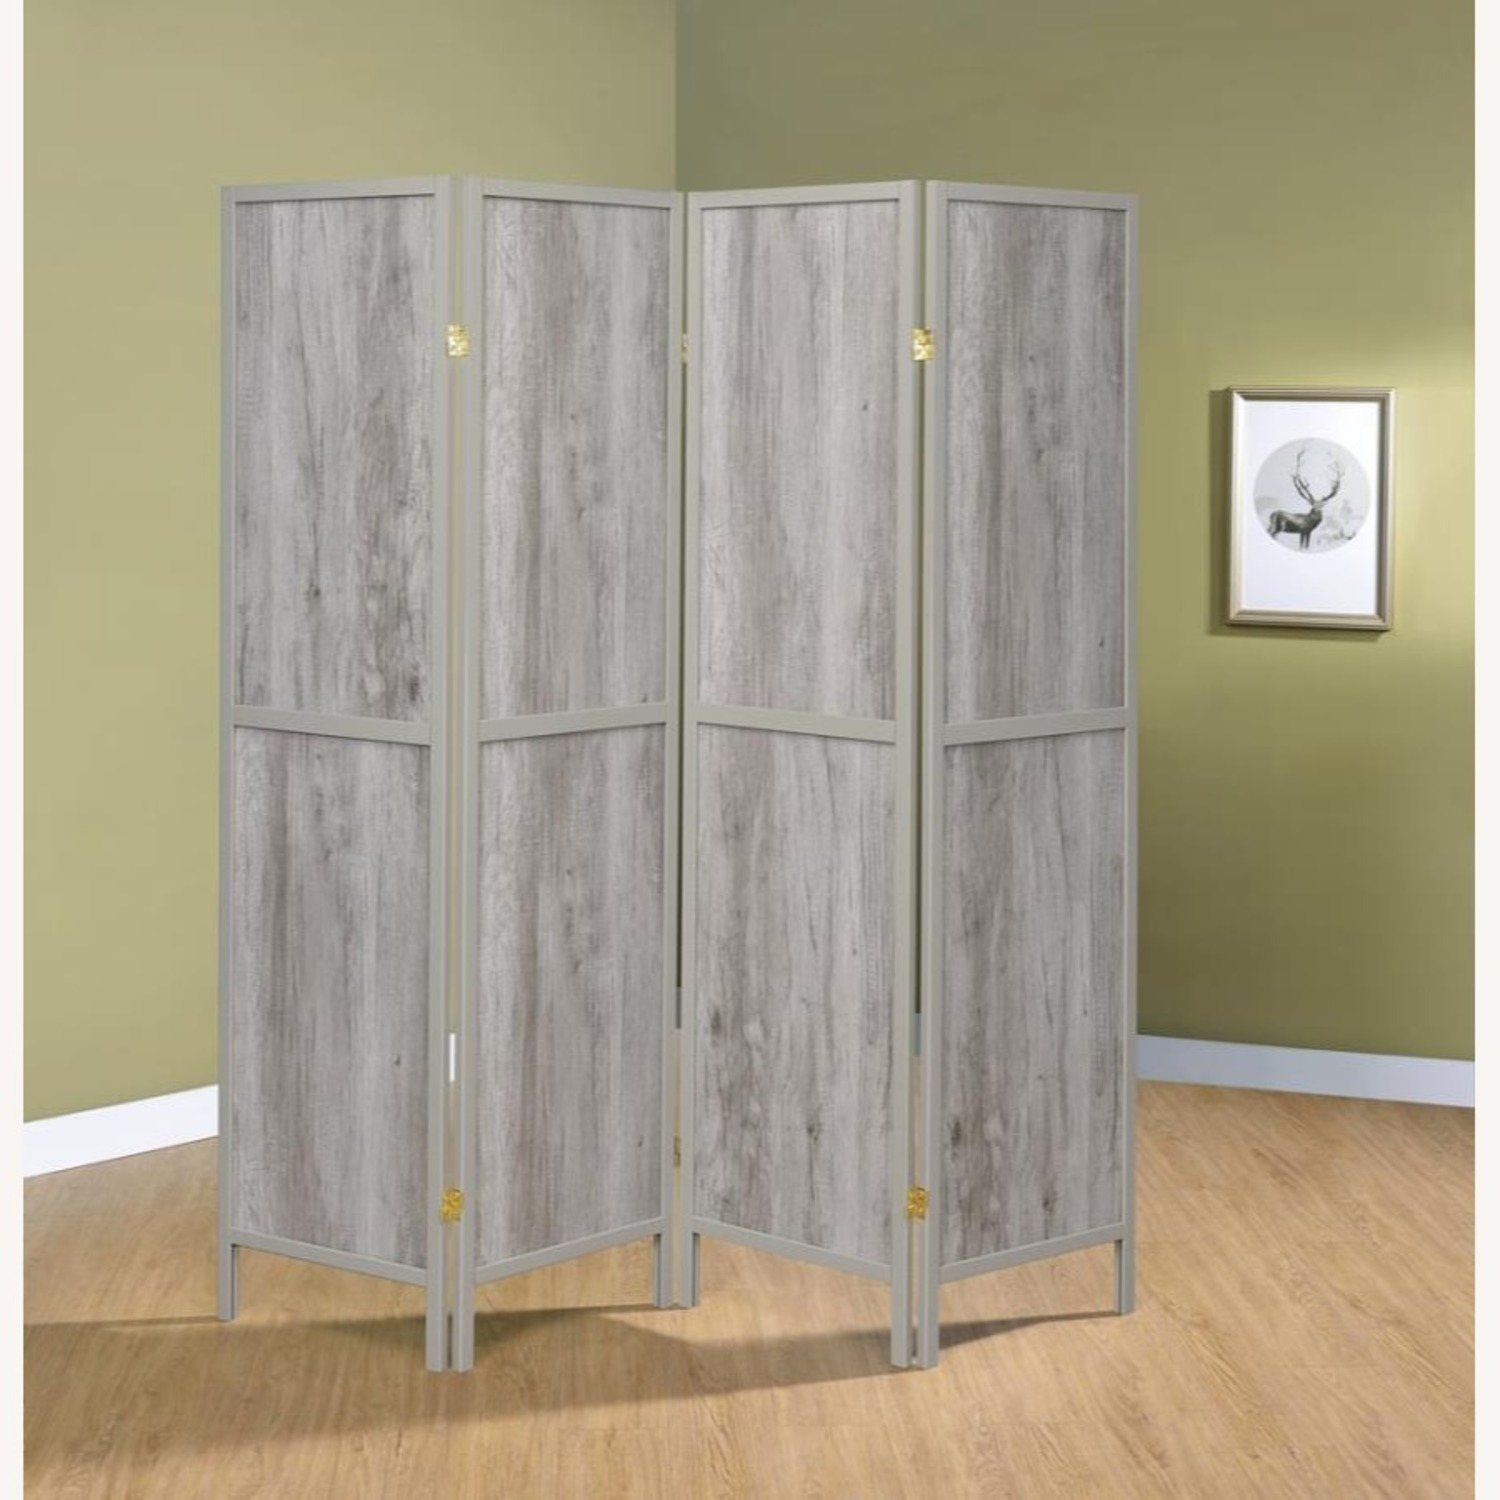 Four-Panel Folding Screen In Grey Driftwood Finish - image-3